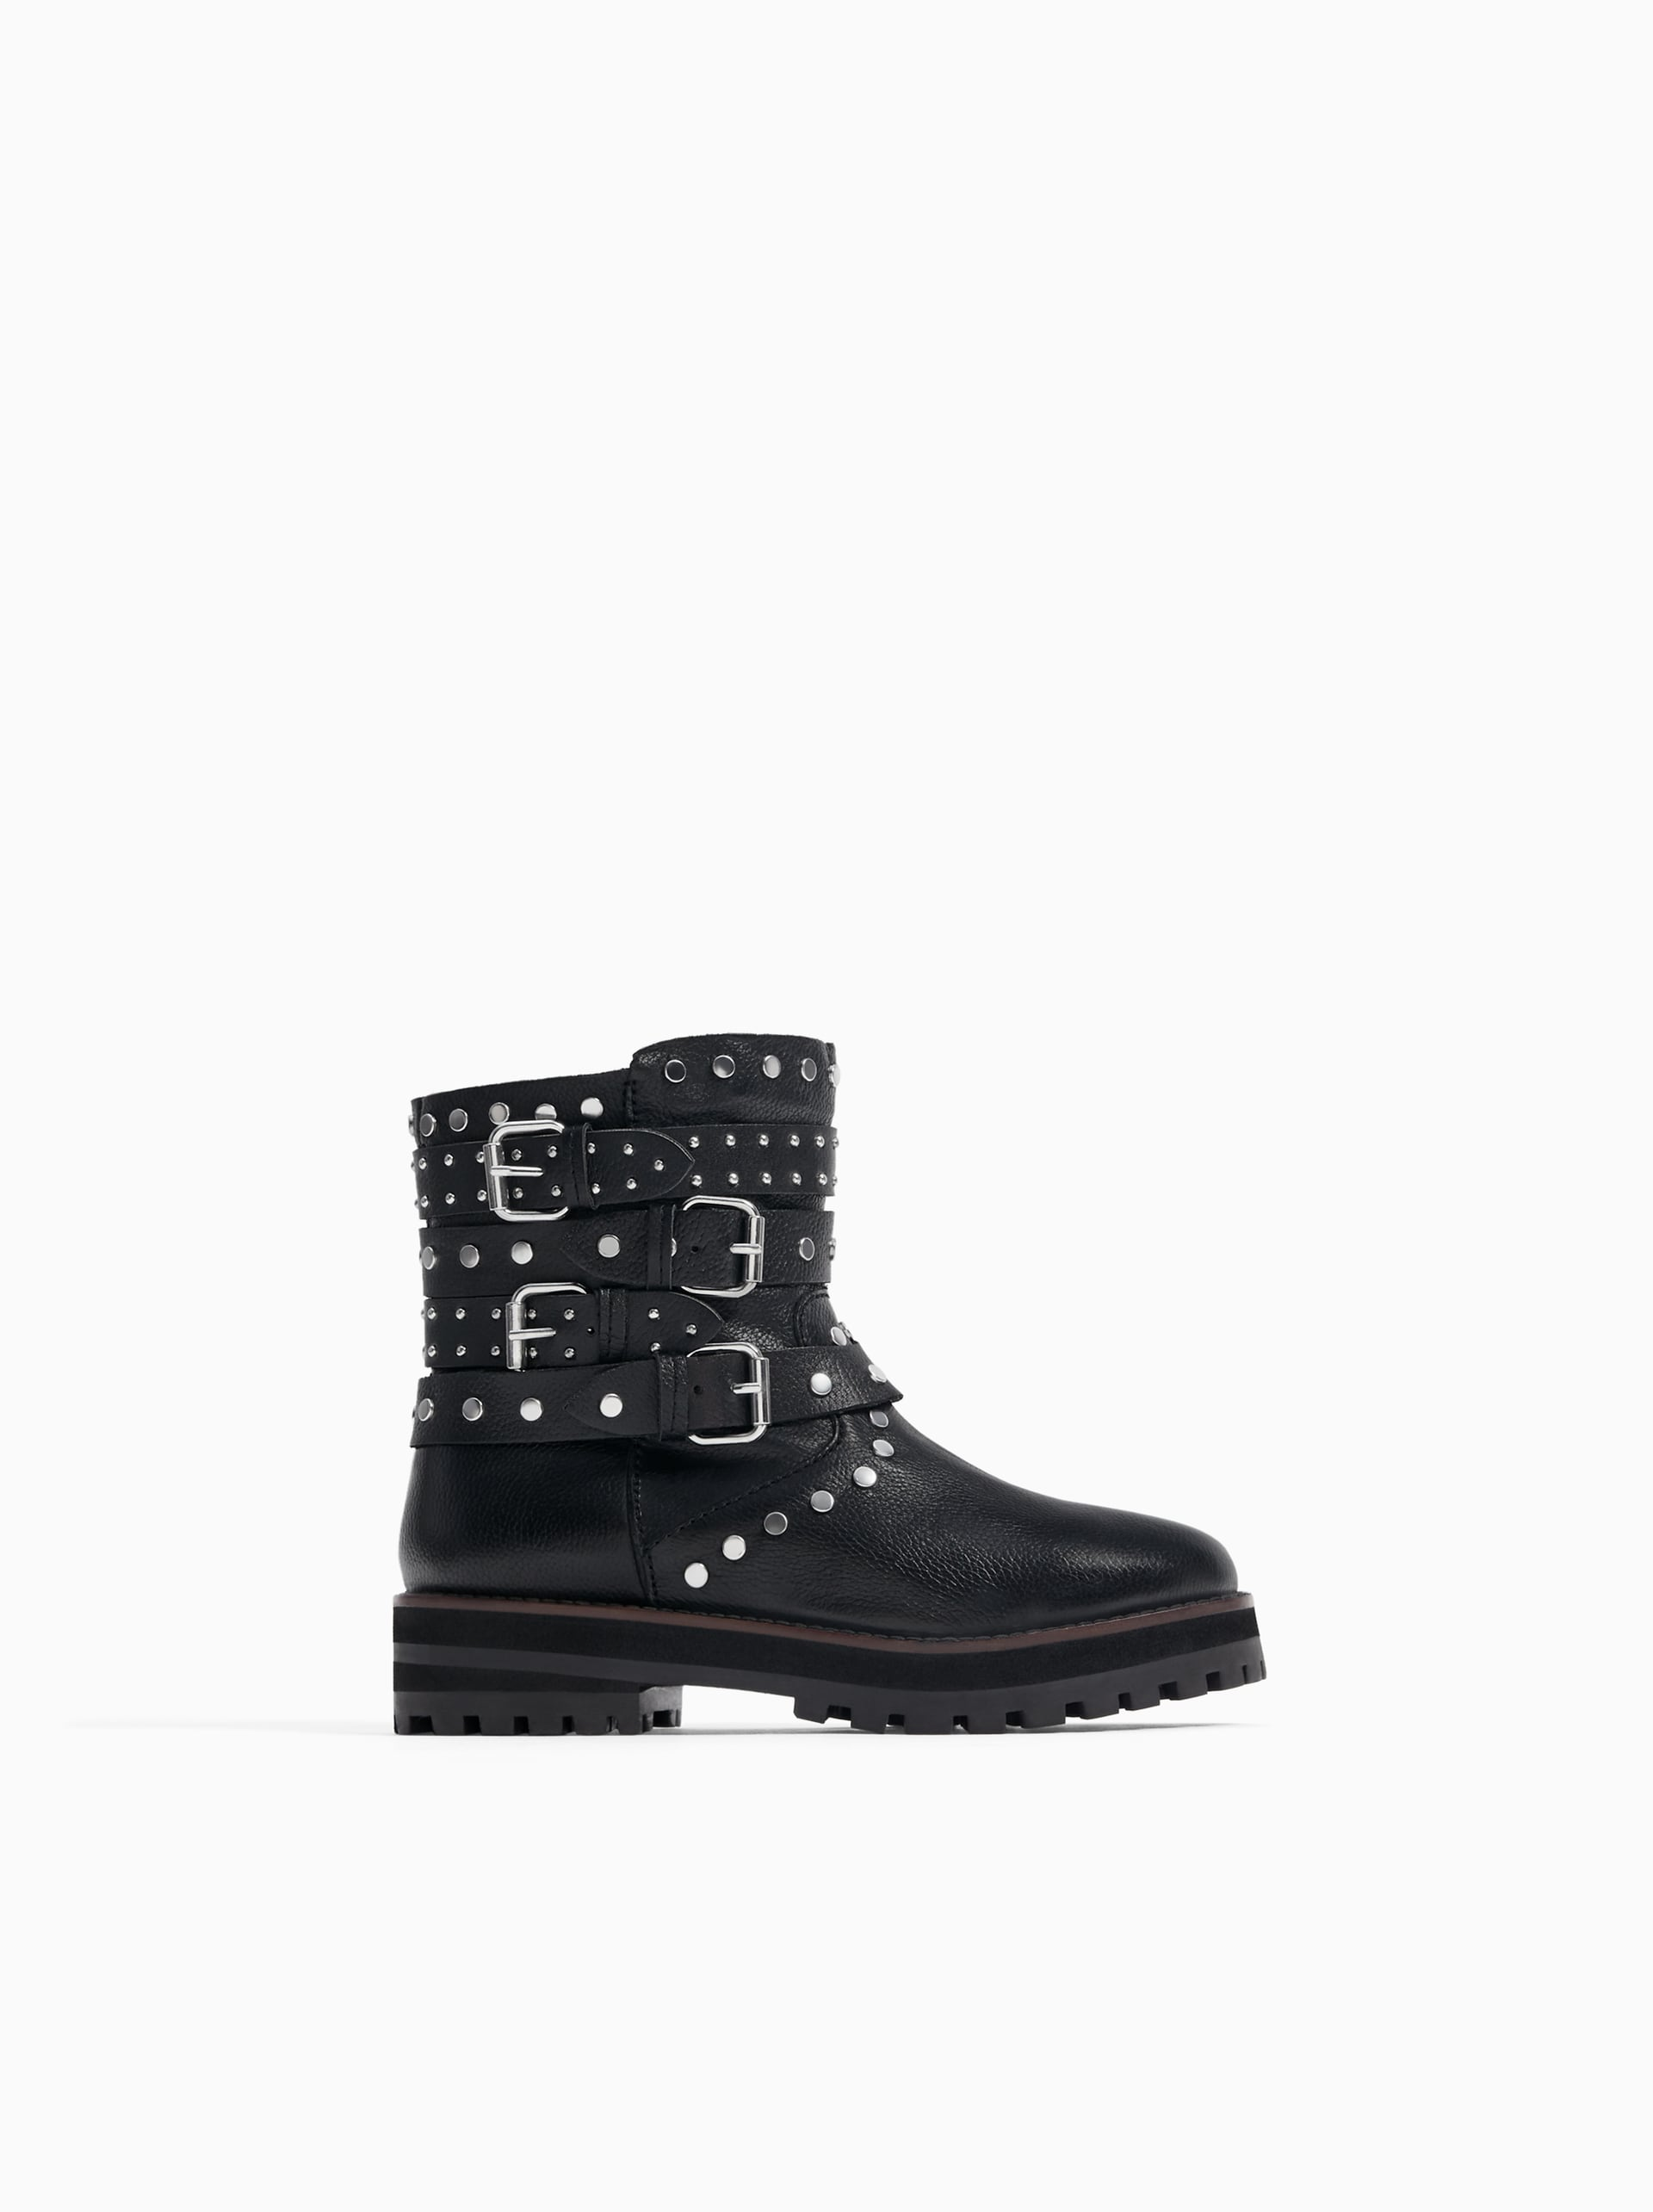 1d0d1513c60 STUDDED LEATHER BIKER ANKLE BOOTS - - | ZARA Serbia